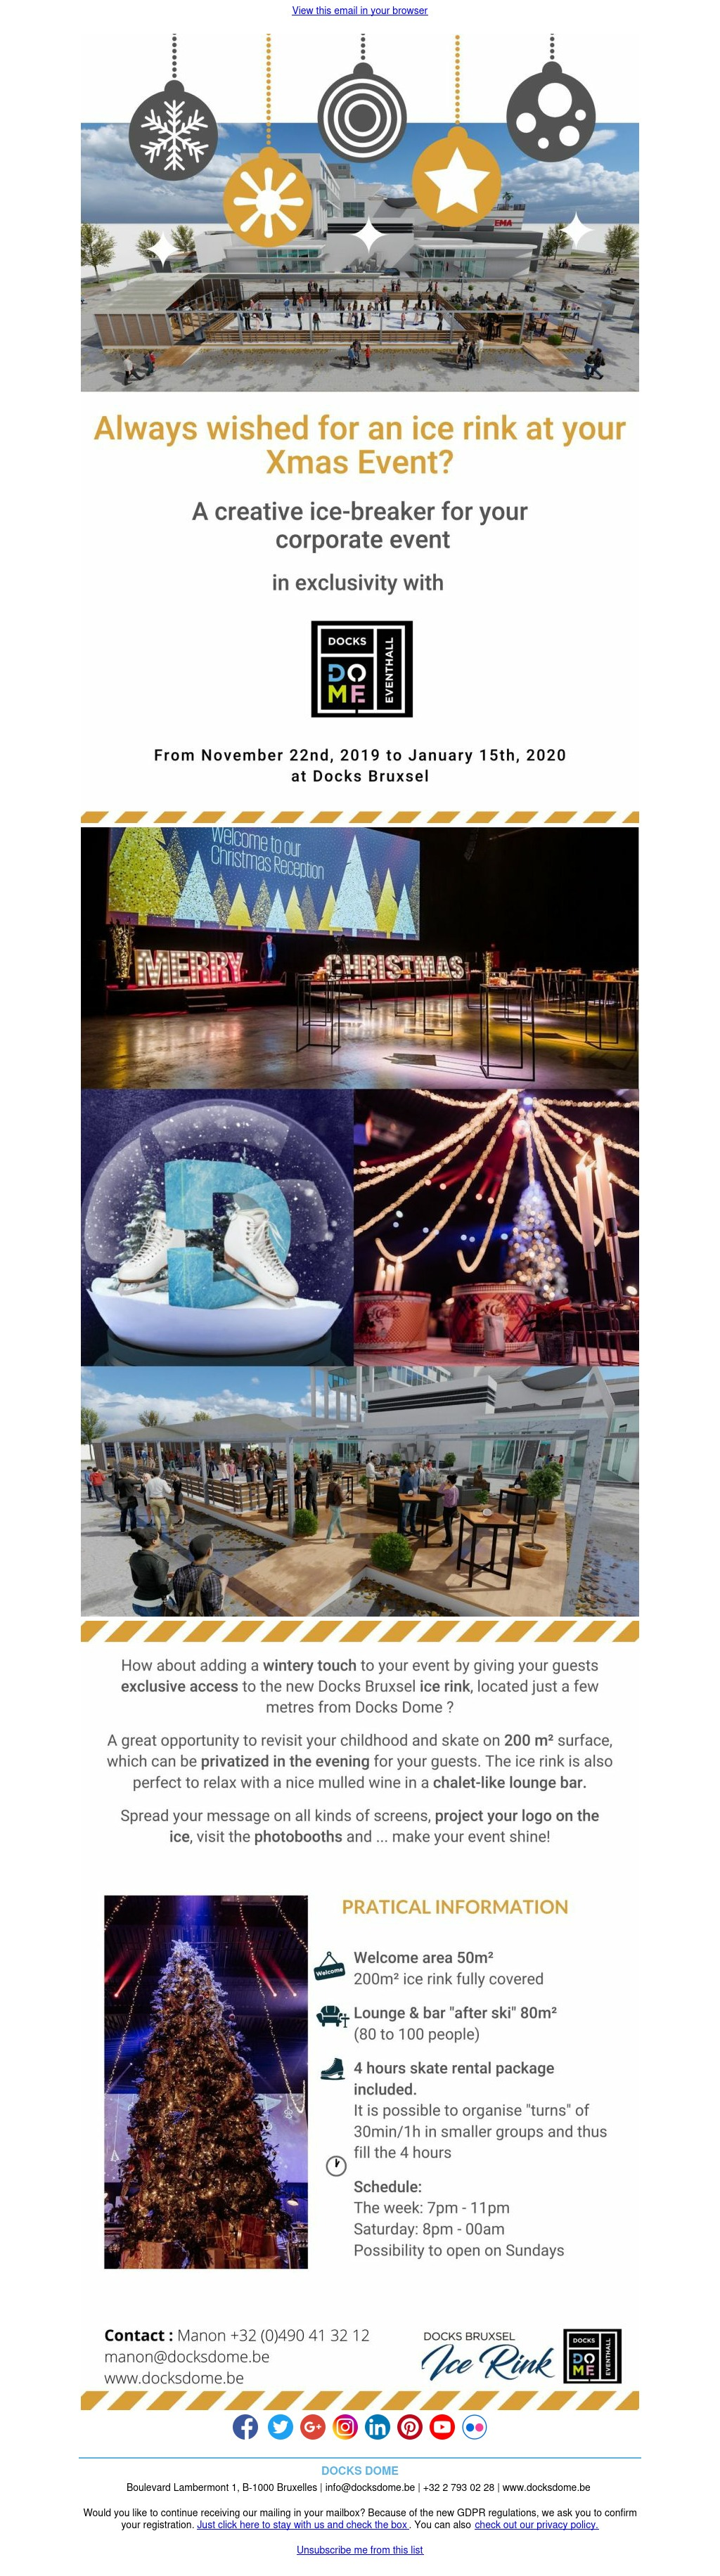 Always wished for an ice rink at your Xmas event?